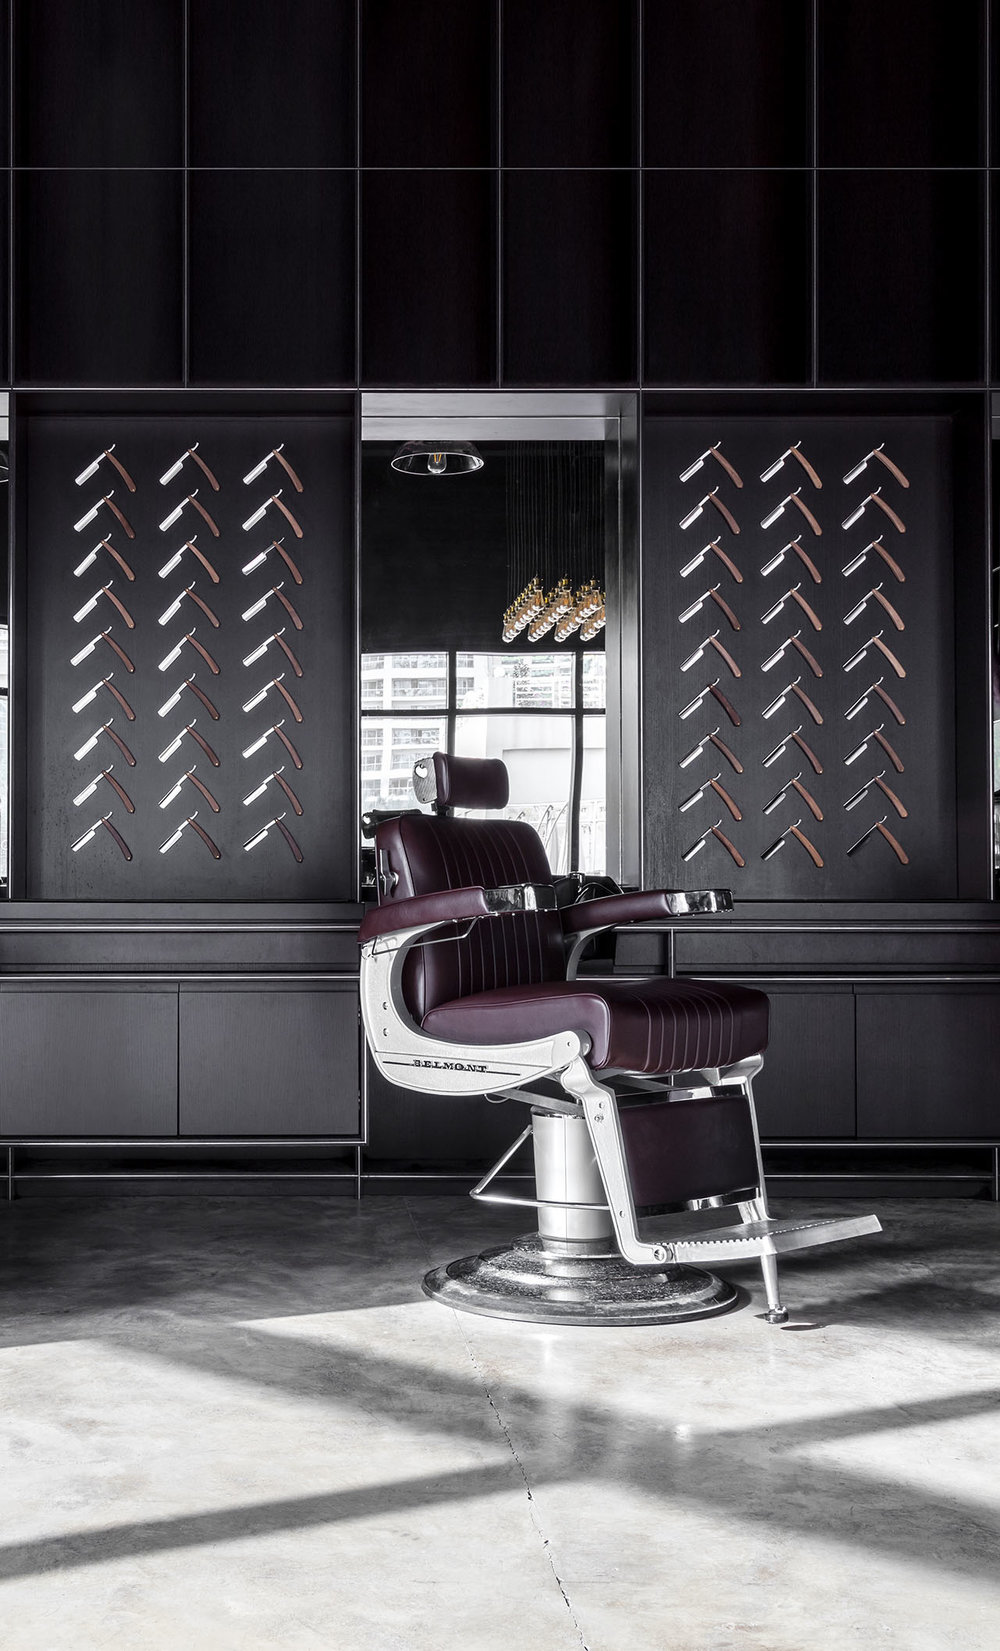 Chaps & Co-JLT-Dubai-Barbershop-Belmont-Chair-Brown-Leather-Blades-Joinery-Interior-Architect.jpg